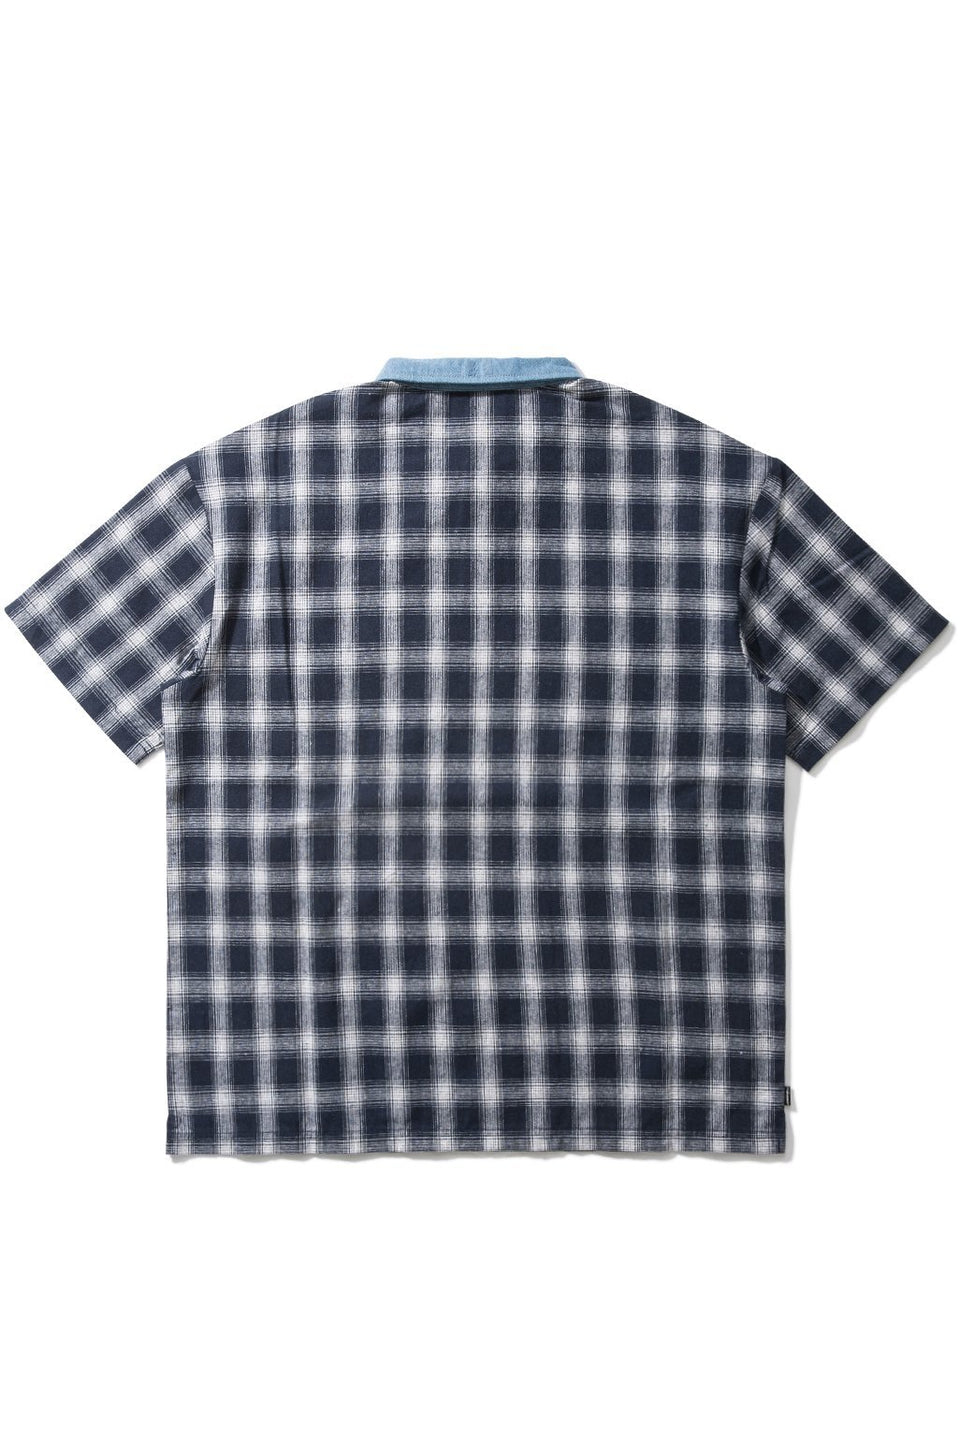 Barnes Polo-TOPS-The Hundreds UK